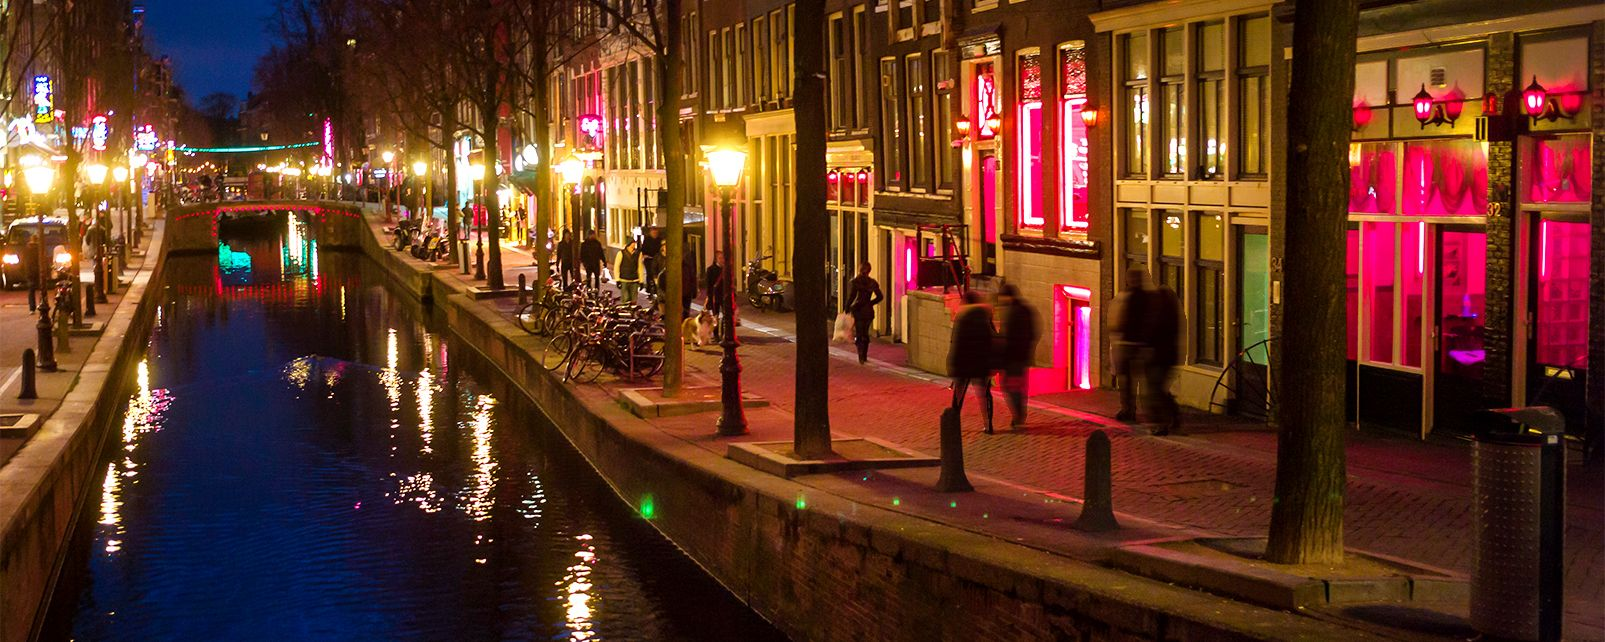 Les arts et la culture, Pays-bas, hollande, amsterdam, sexe, sexualité, prostitution, quartier rouge, red light district.